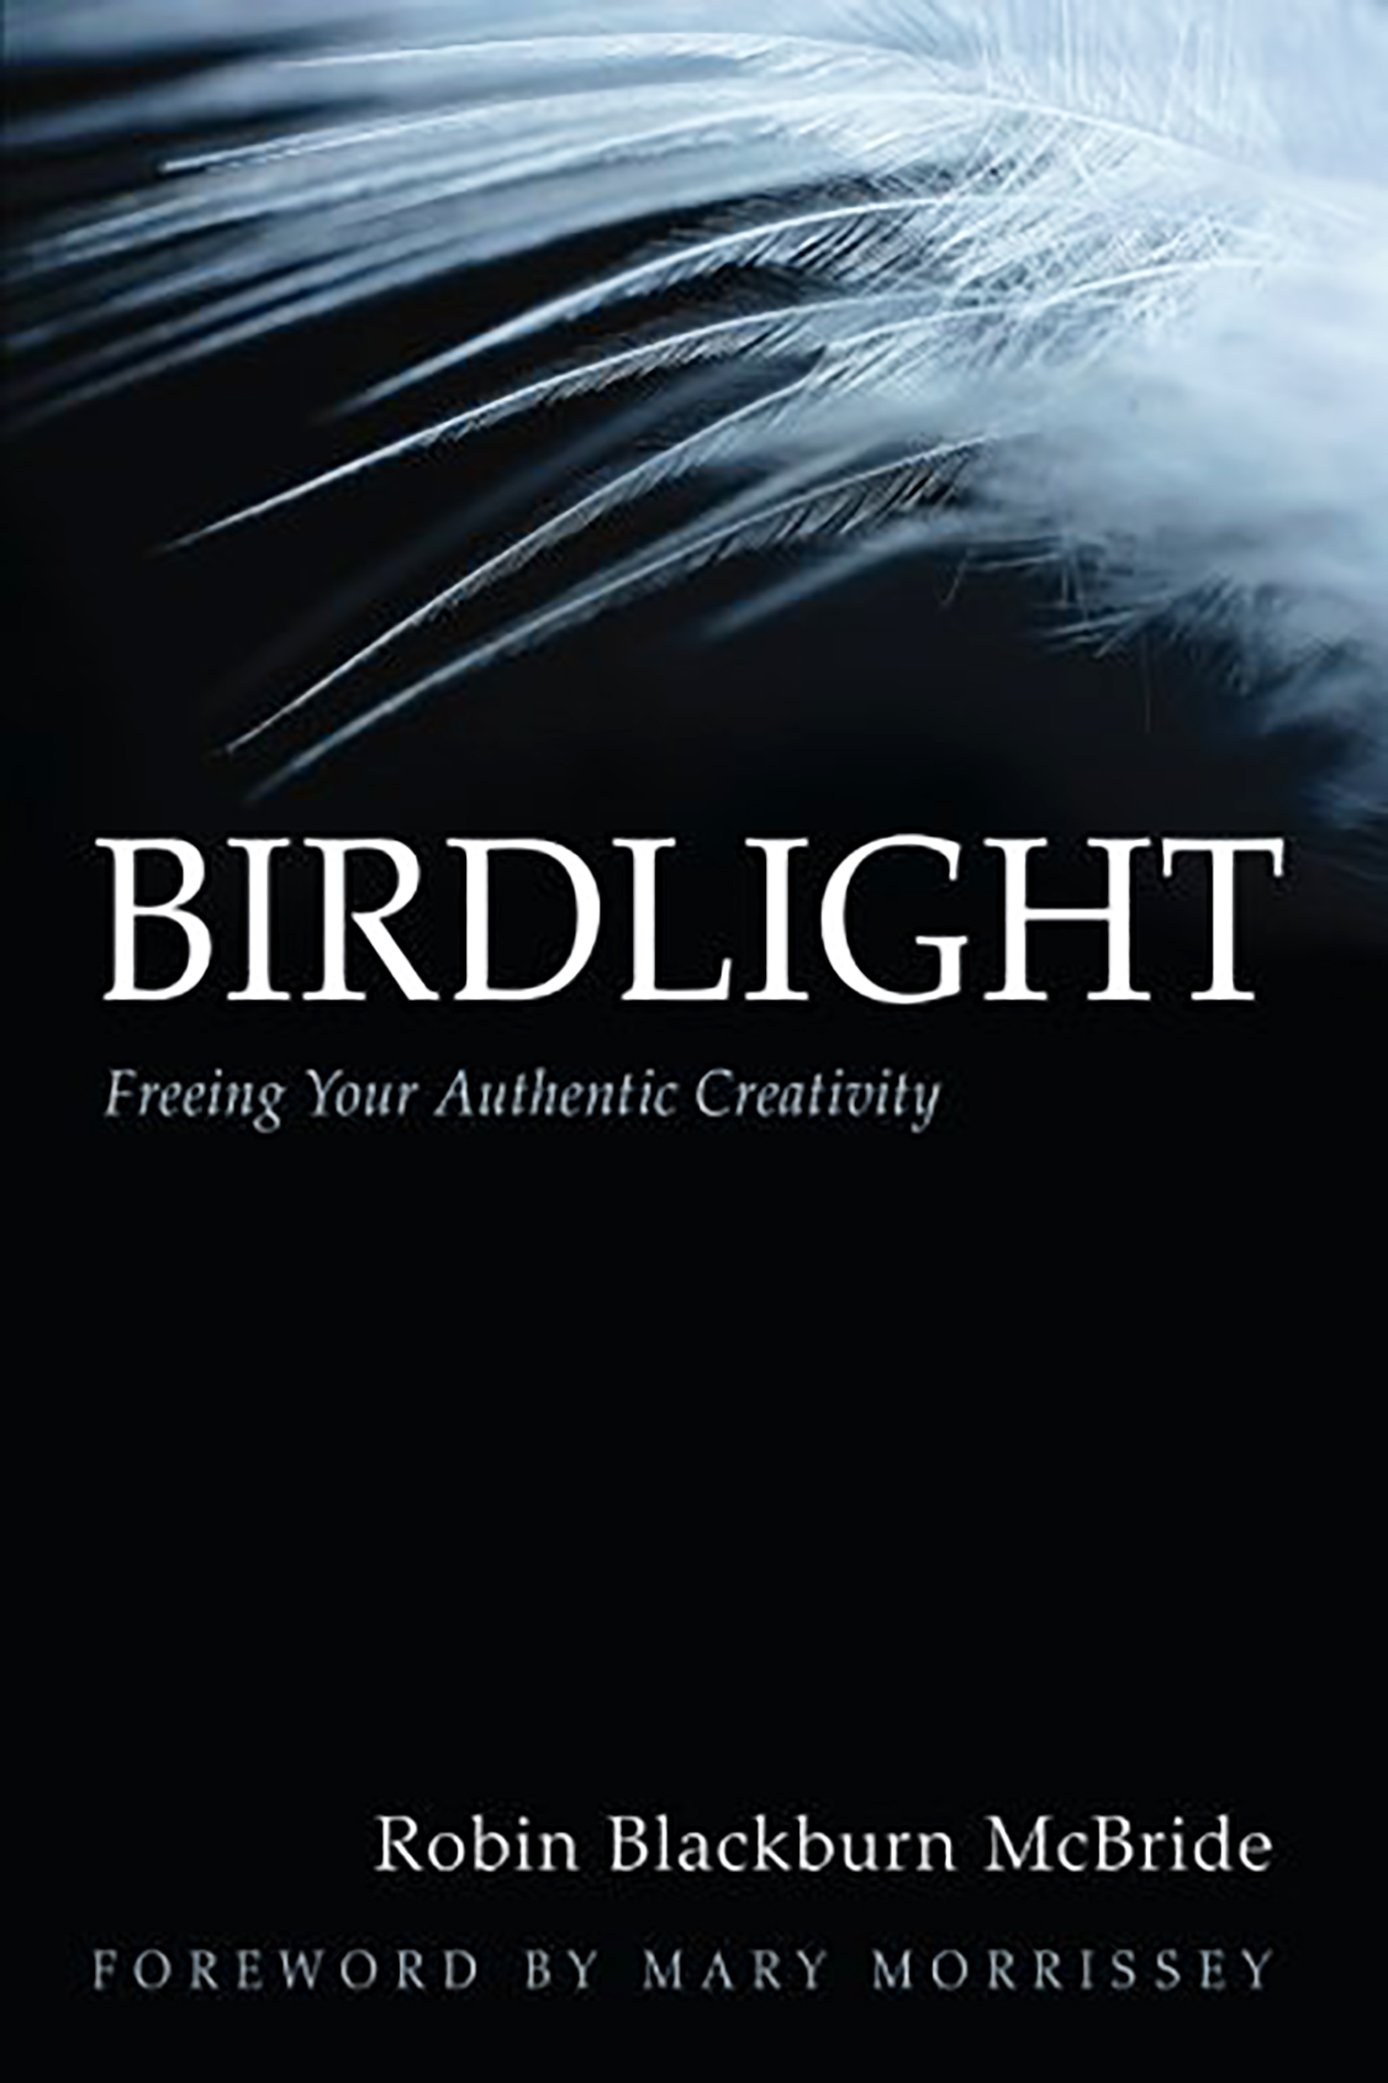 Robin Blackburn McBride - Birdlight